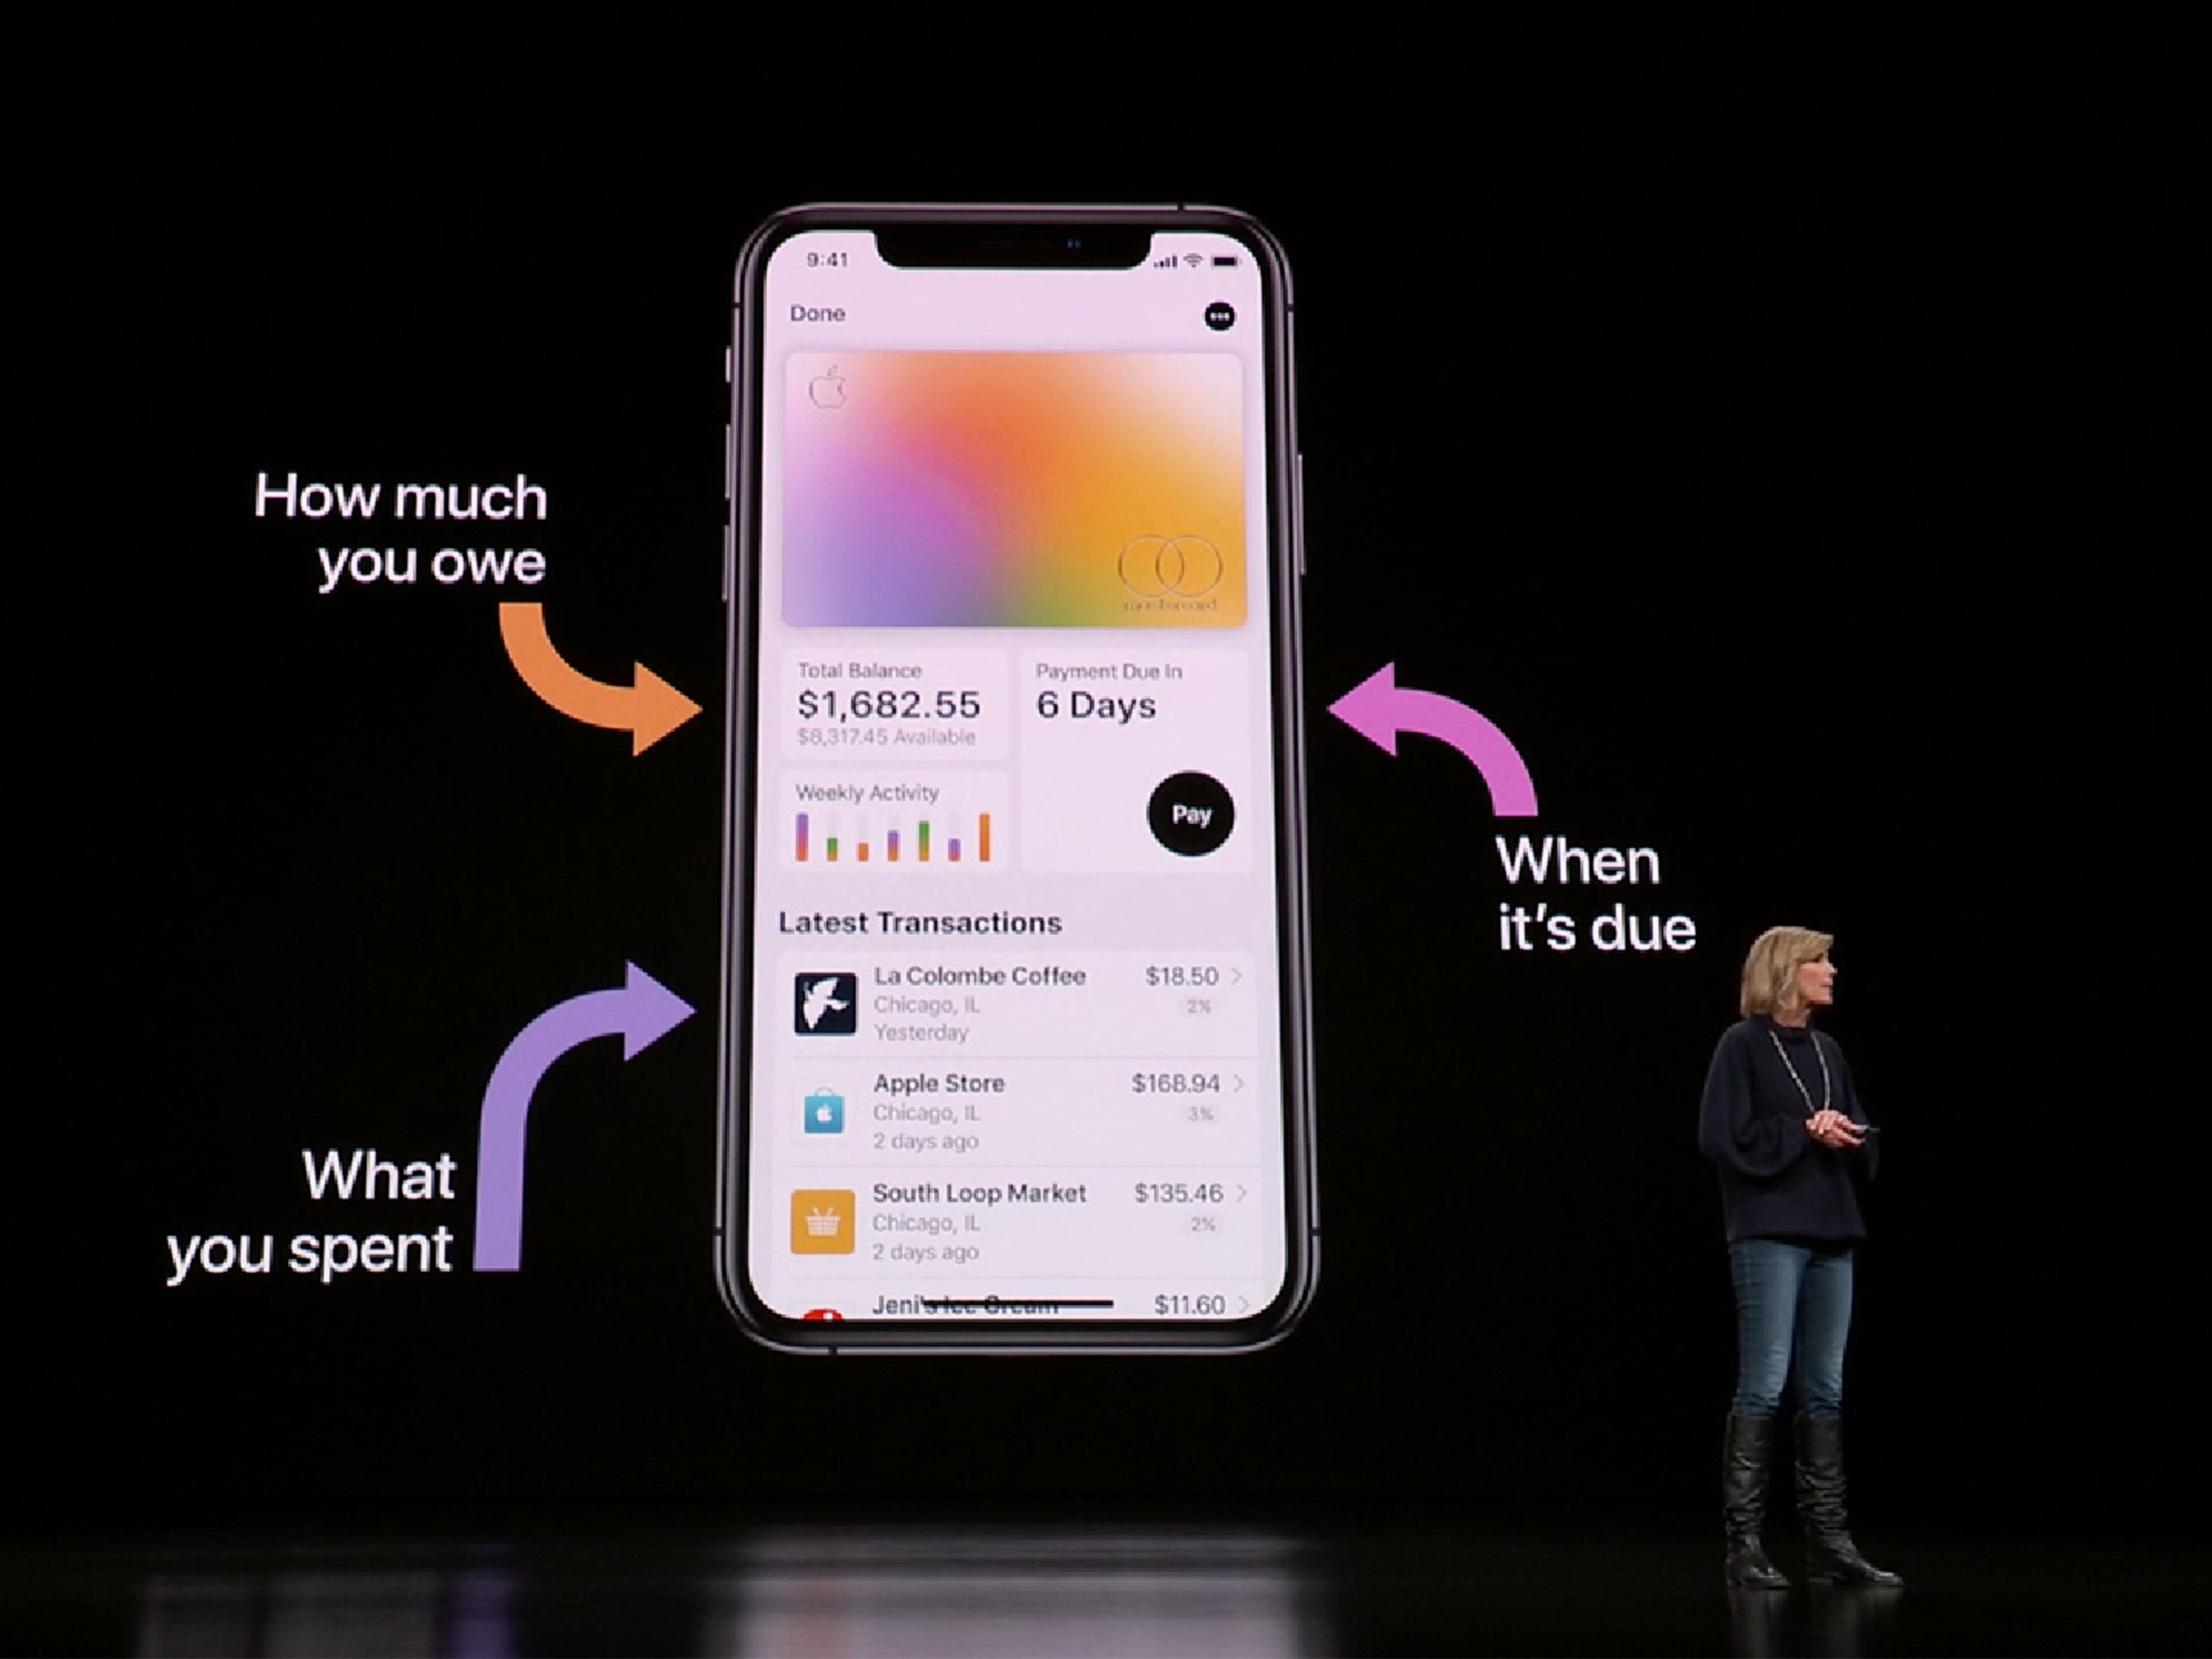 Introducing Apple Card, a new kind of credit card created by Apple